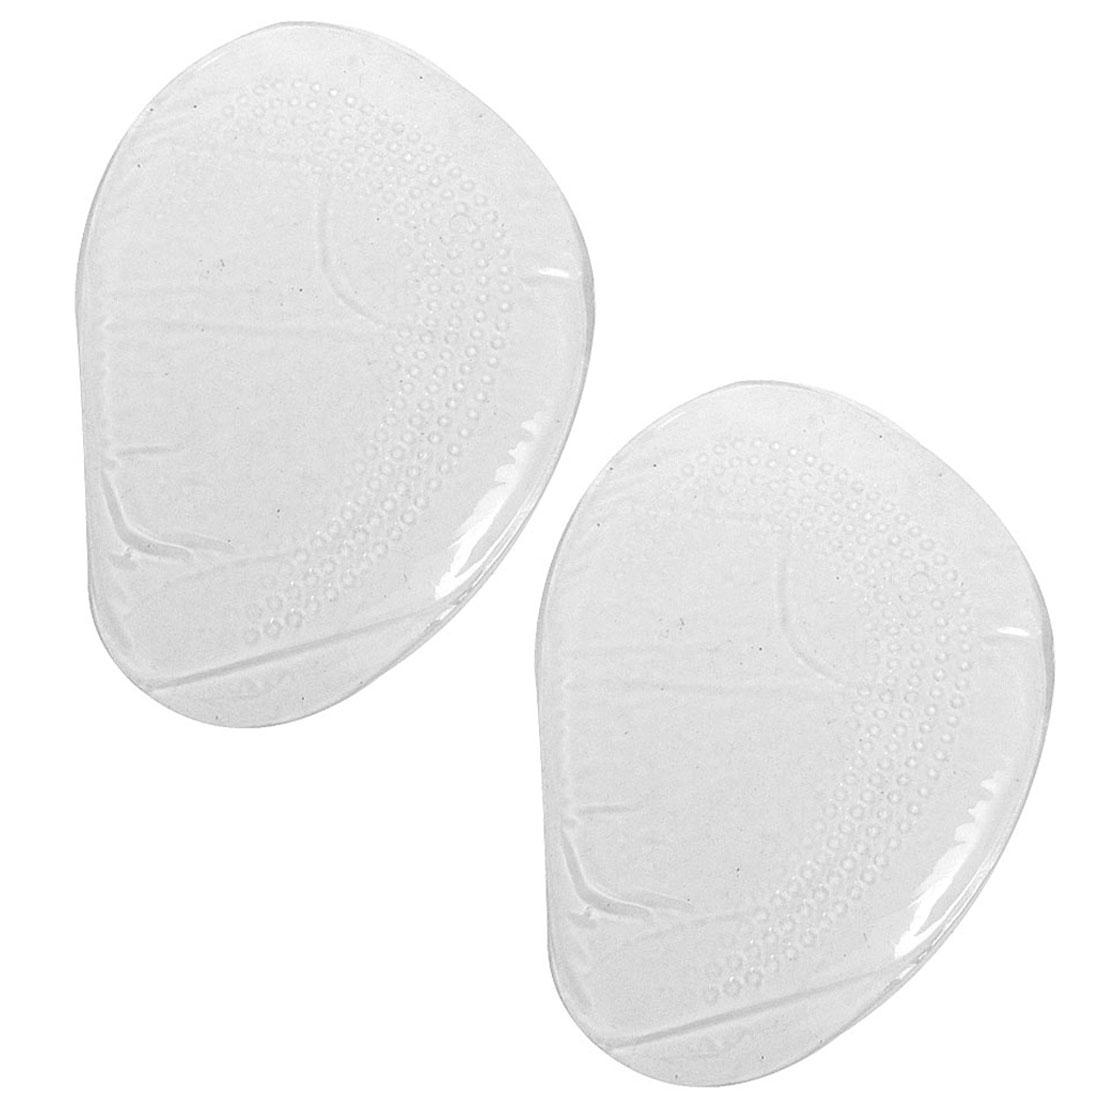 Pair Clear Silicone Nonslip Front Pads Cushions Insoles for Women